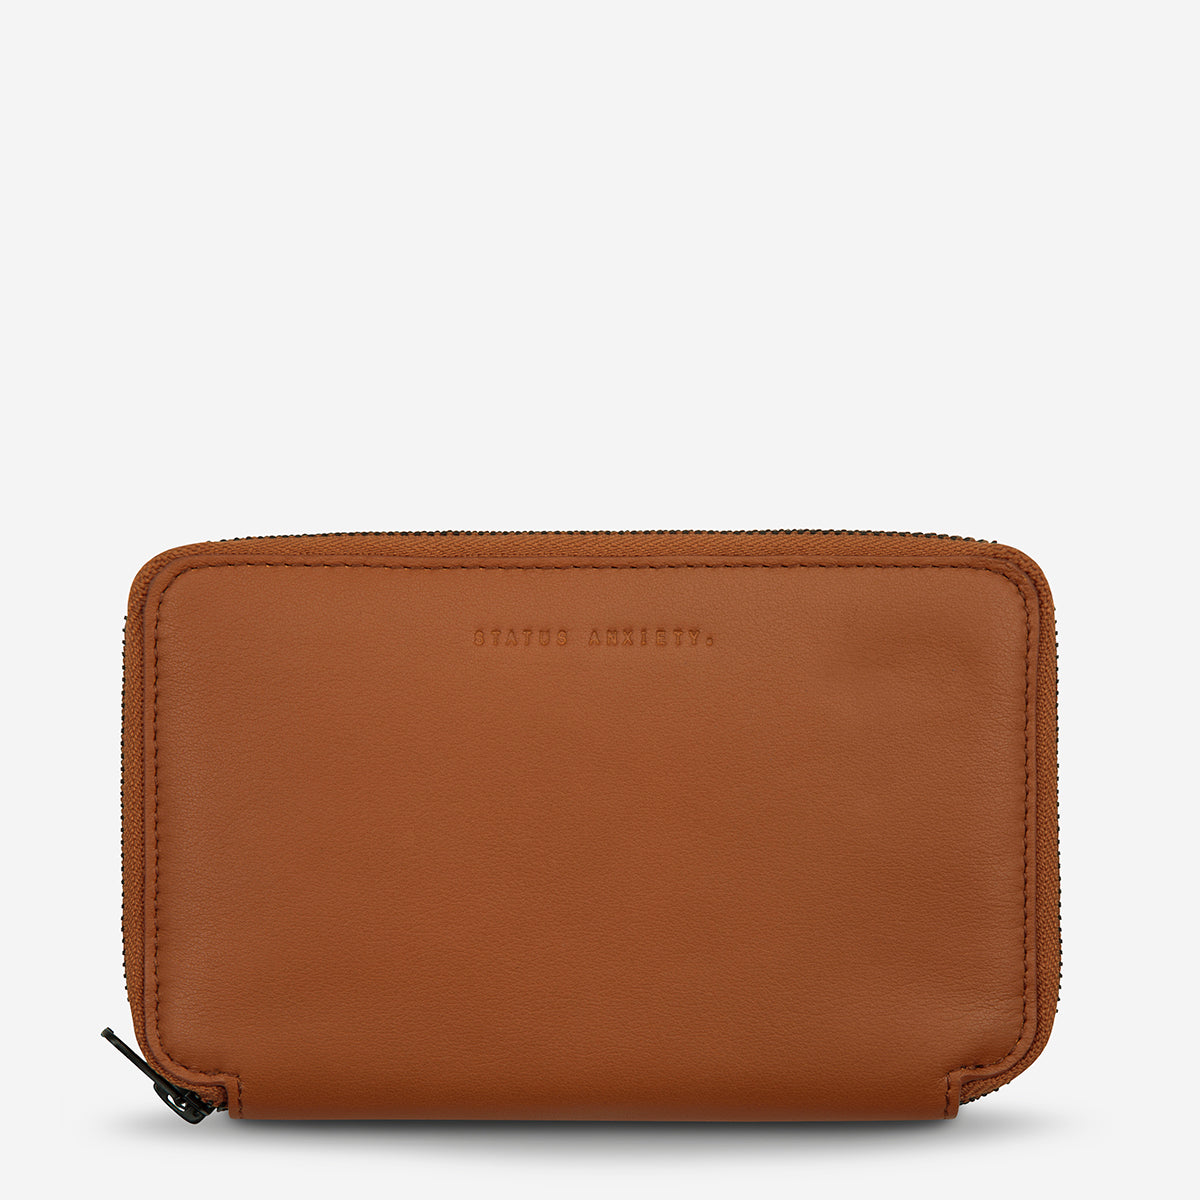 Status Anxiety Vow Leather Travel Wallet - Camel